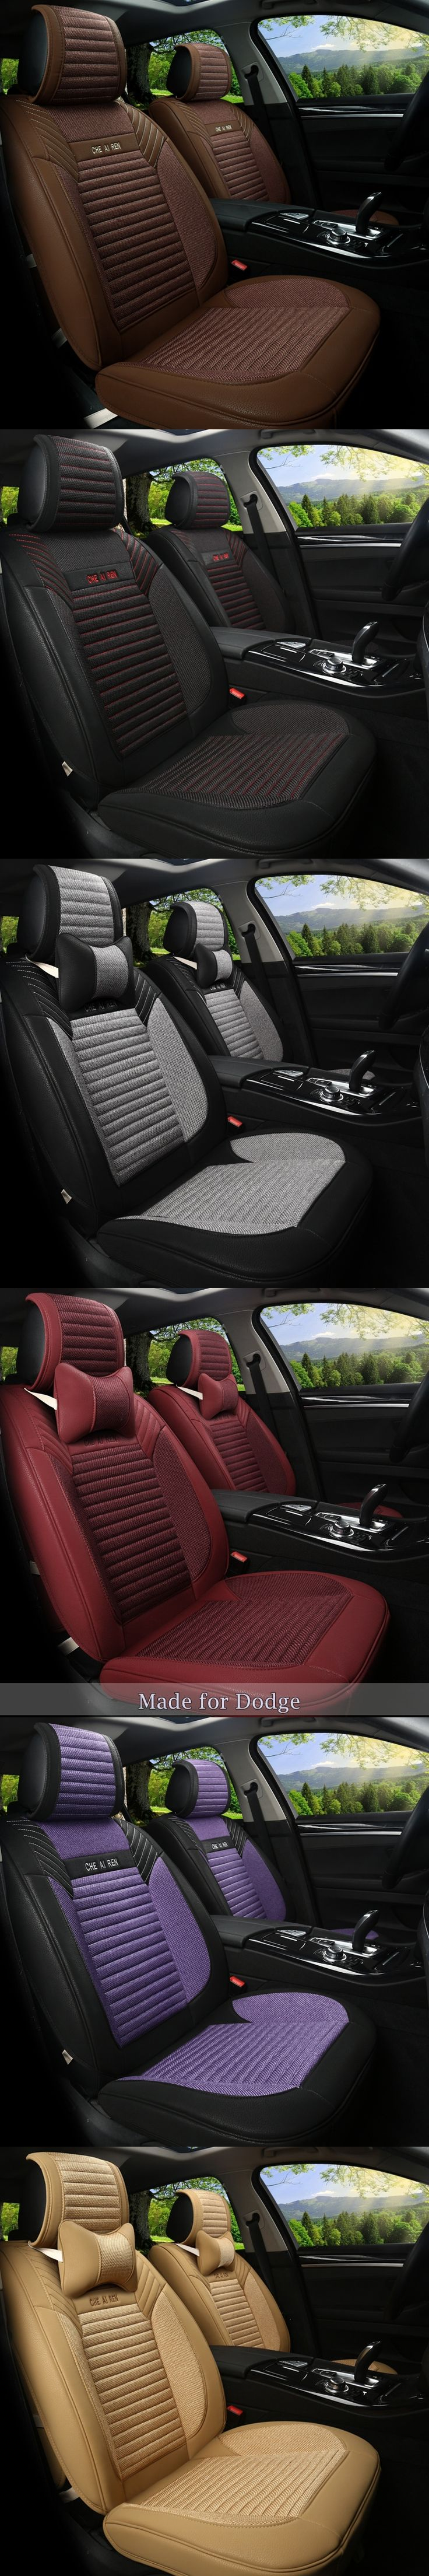 Linen Flax Leather Seat Covers for Dodge Viper JCUV Caliber Avenger Charger Nitro Ram Truck 5 Seat Cushion Seat Protect 151w